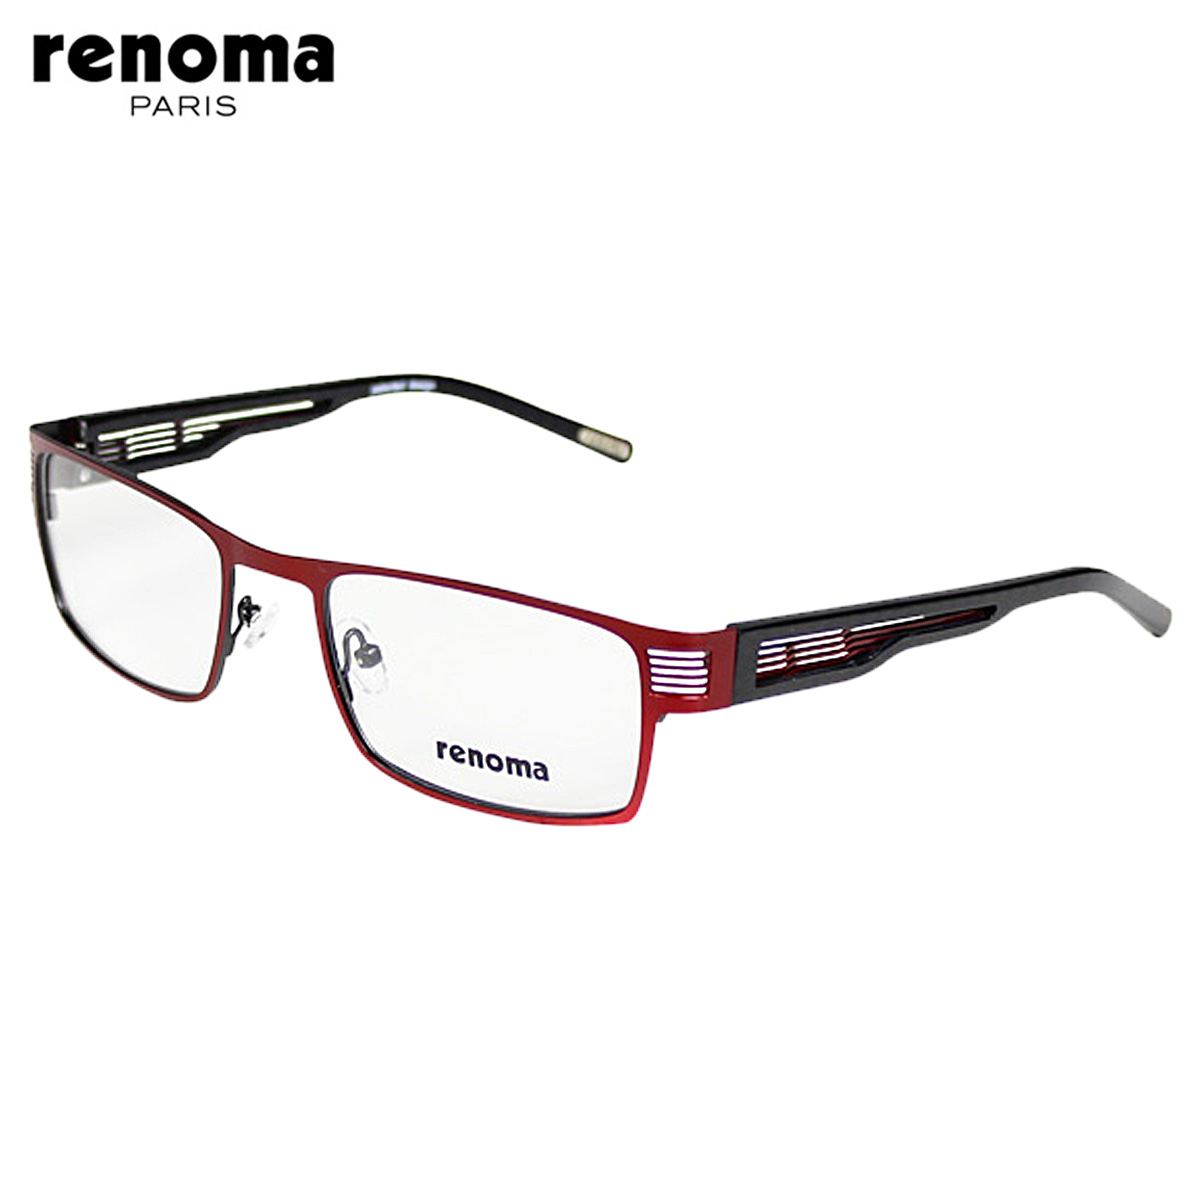 bfbd52438d Point 10 x renoma renoma glasses  red x Black   regular  metal frame mens  Womens unisex glasses business